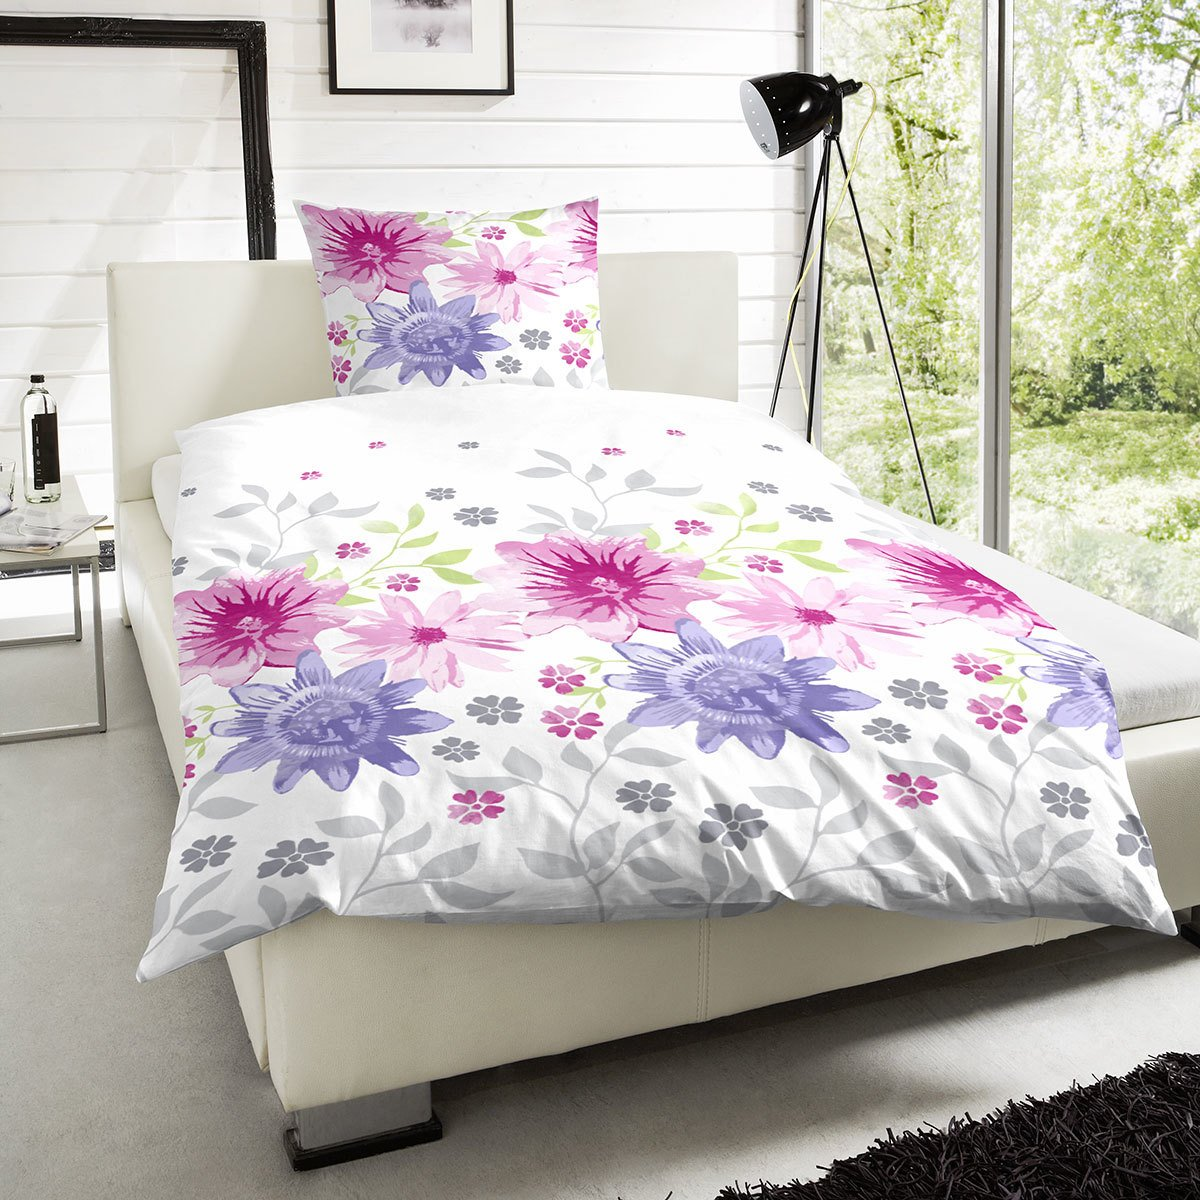 hahn perkal bettw sche blumenwiese pink g nstig online kaufen bei bettwaren shop. Black Bedroom Furniture Sets. Home Design Ideas